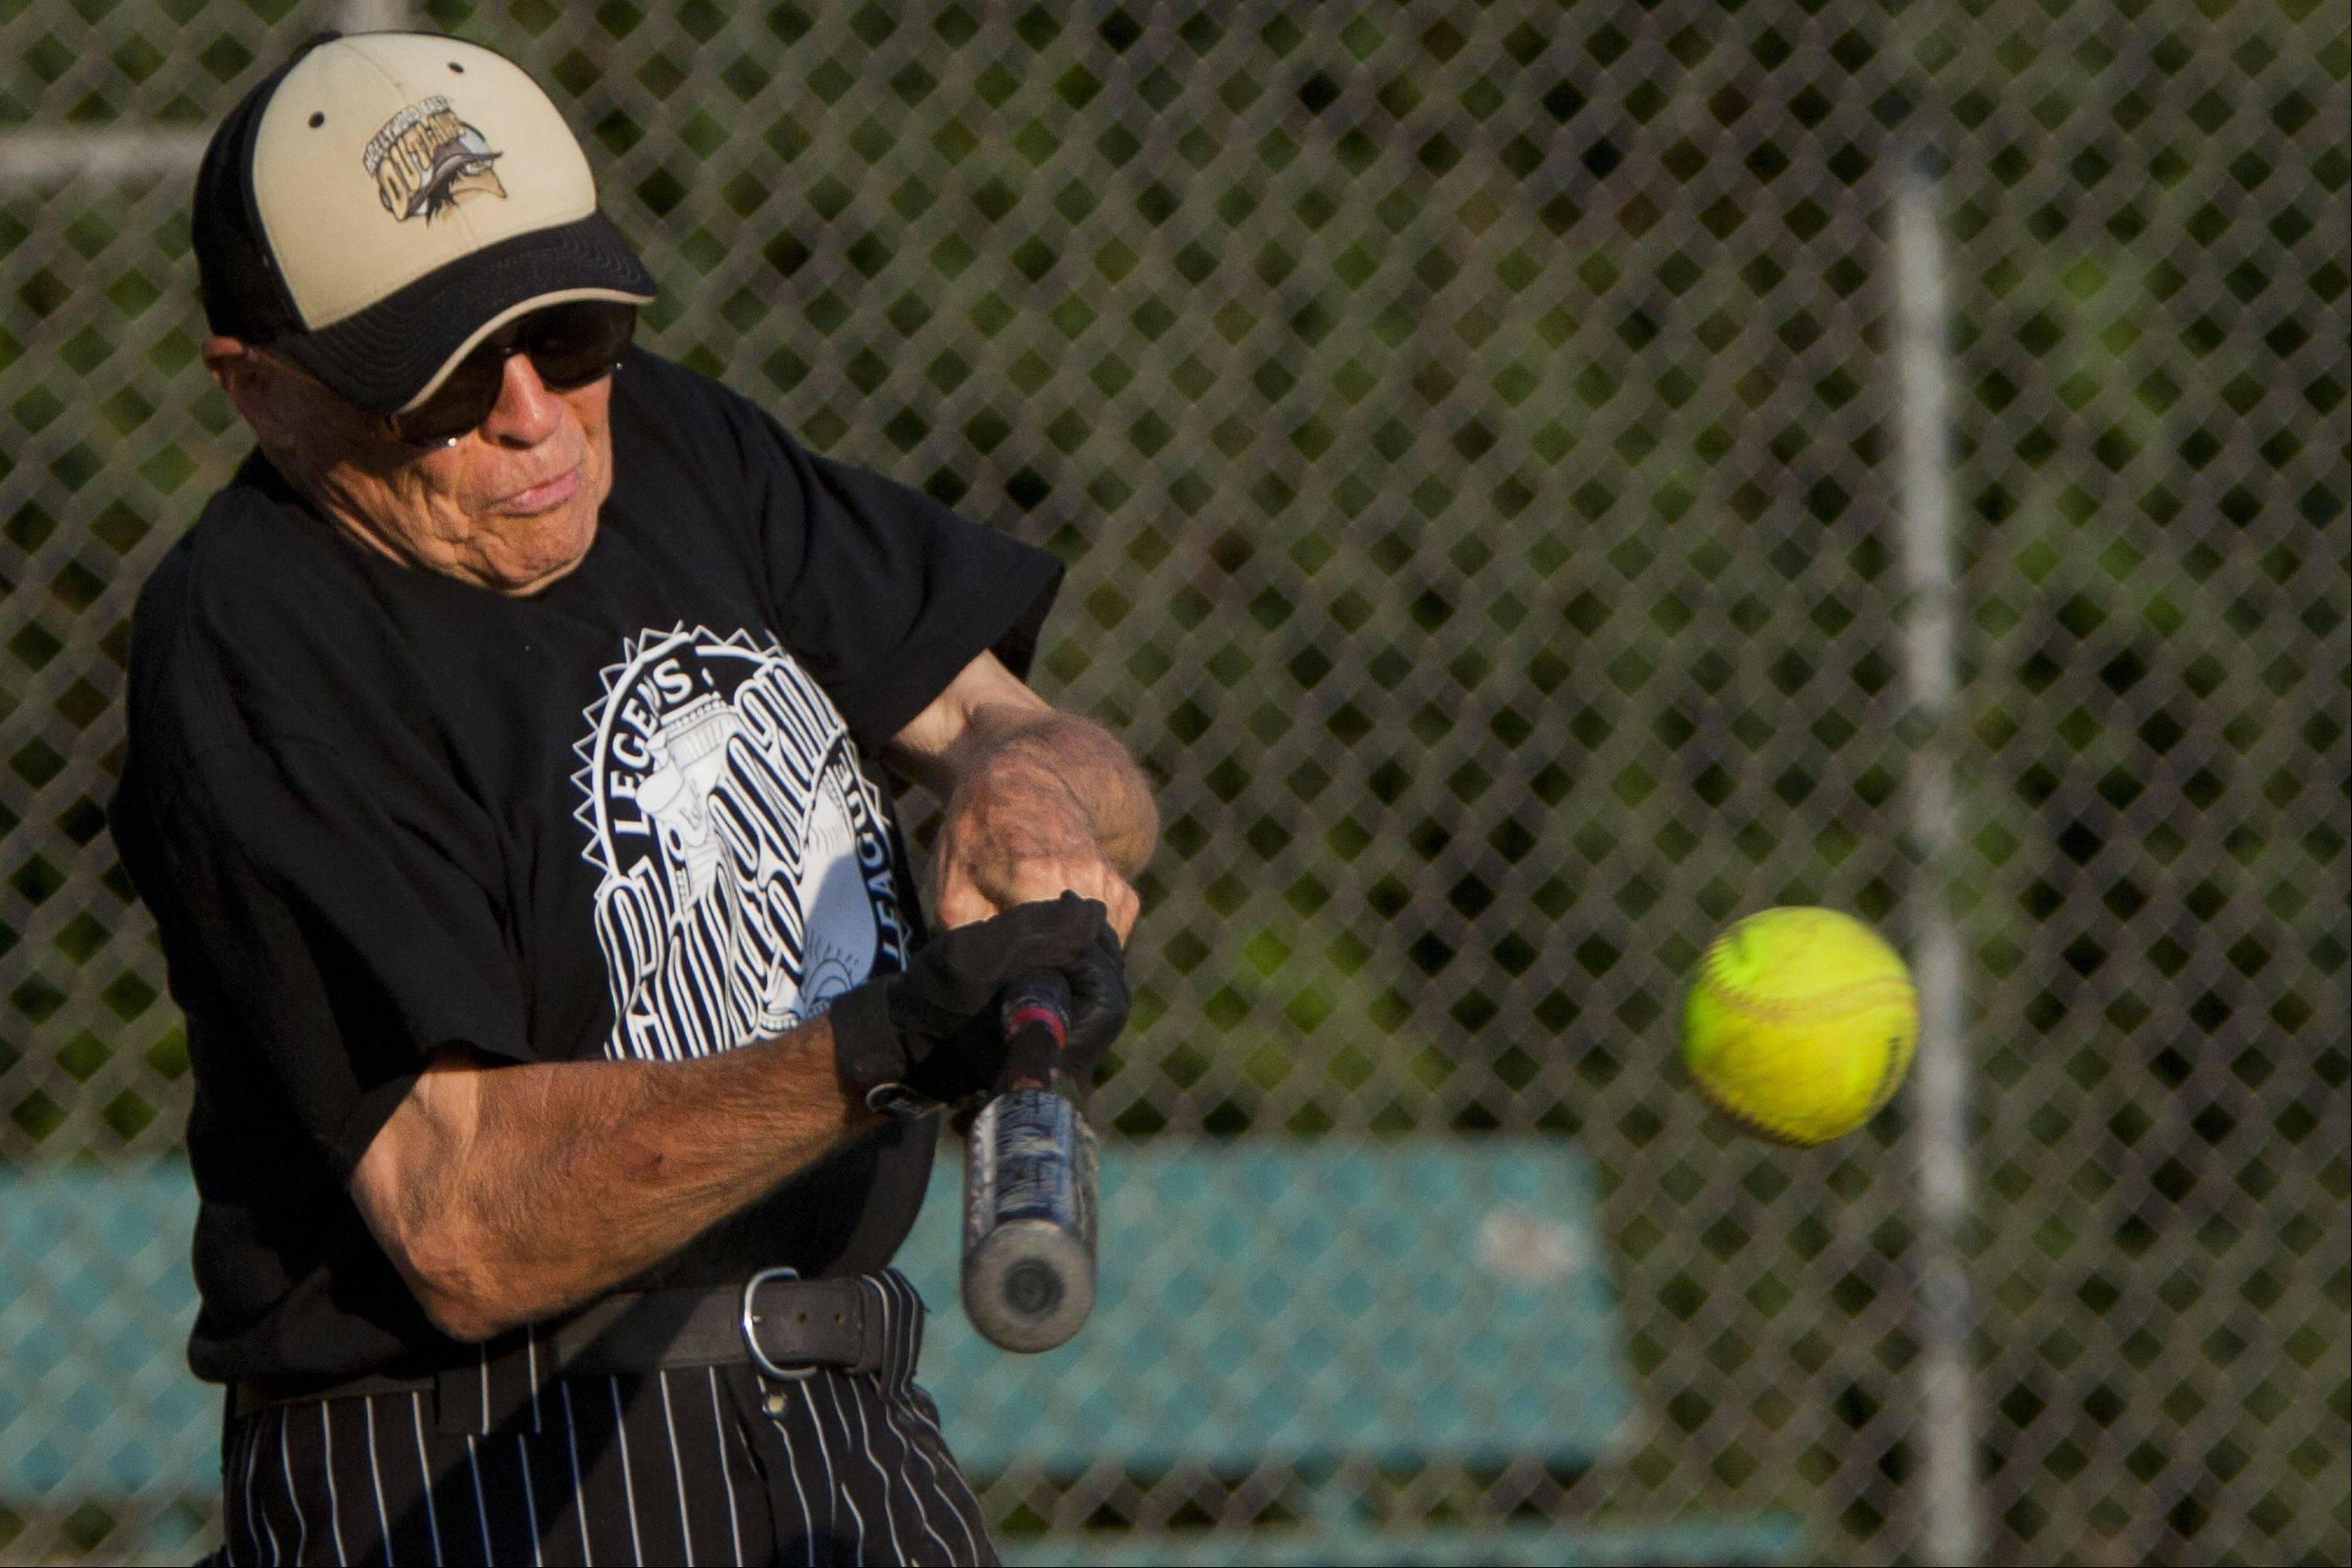 Ken Black, 82, the oldest member of the Chicagoland Legends Softball League hits a line-drive back to pitcher.